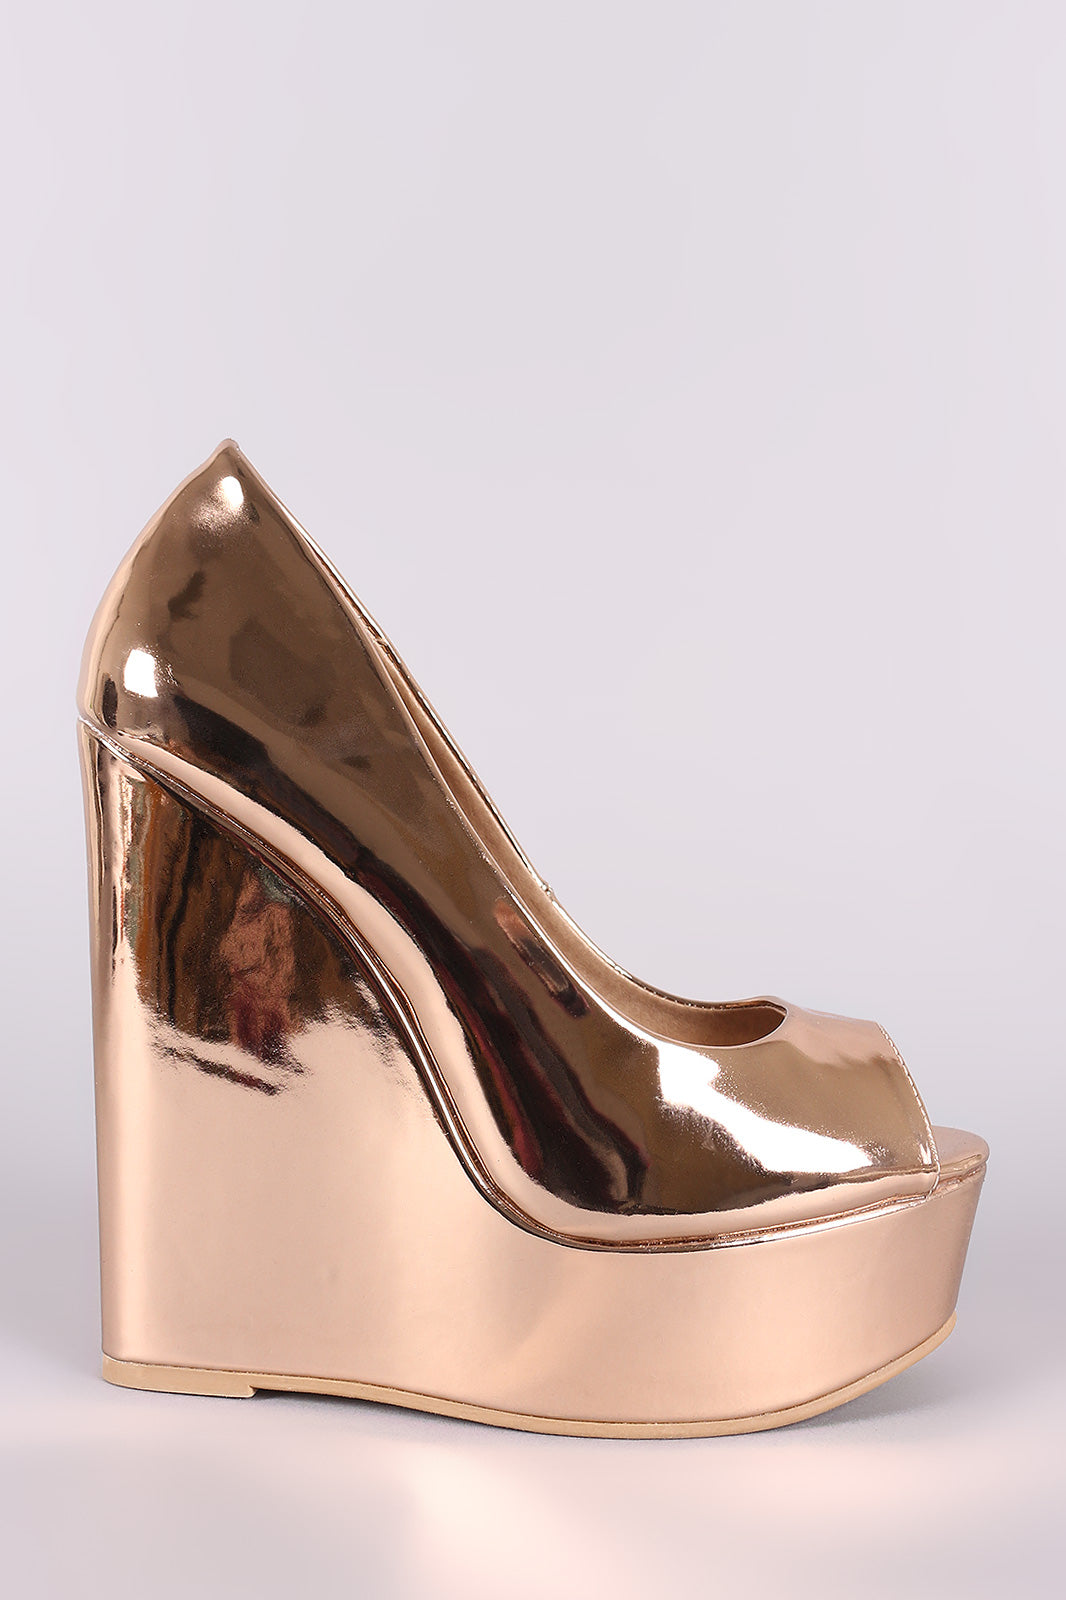 Rose Gold Patent Leather Wedges Vegan Wedge By Vegan Leather | Peep Toe Vegan Patent Leather Platform Wedge